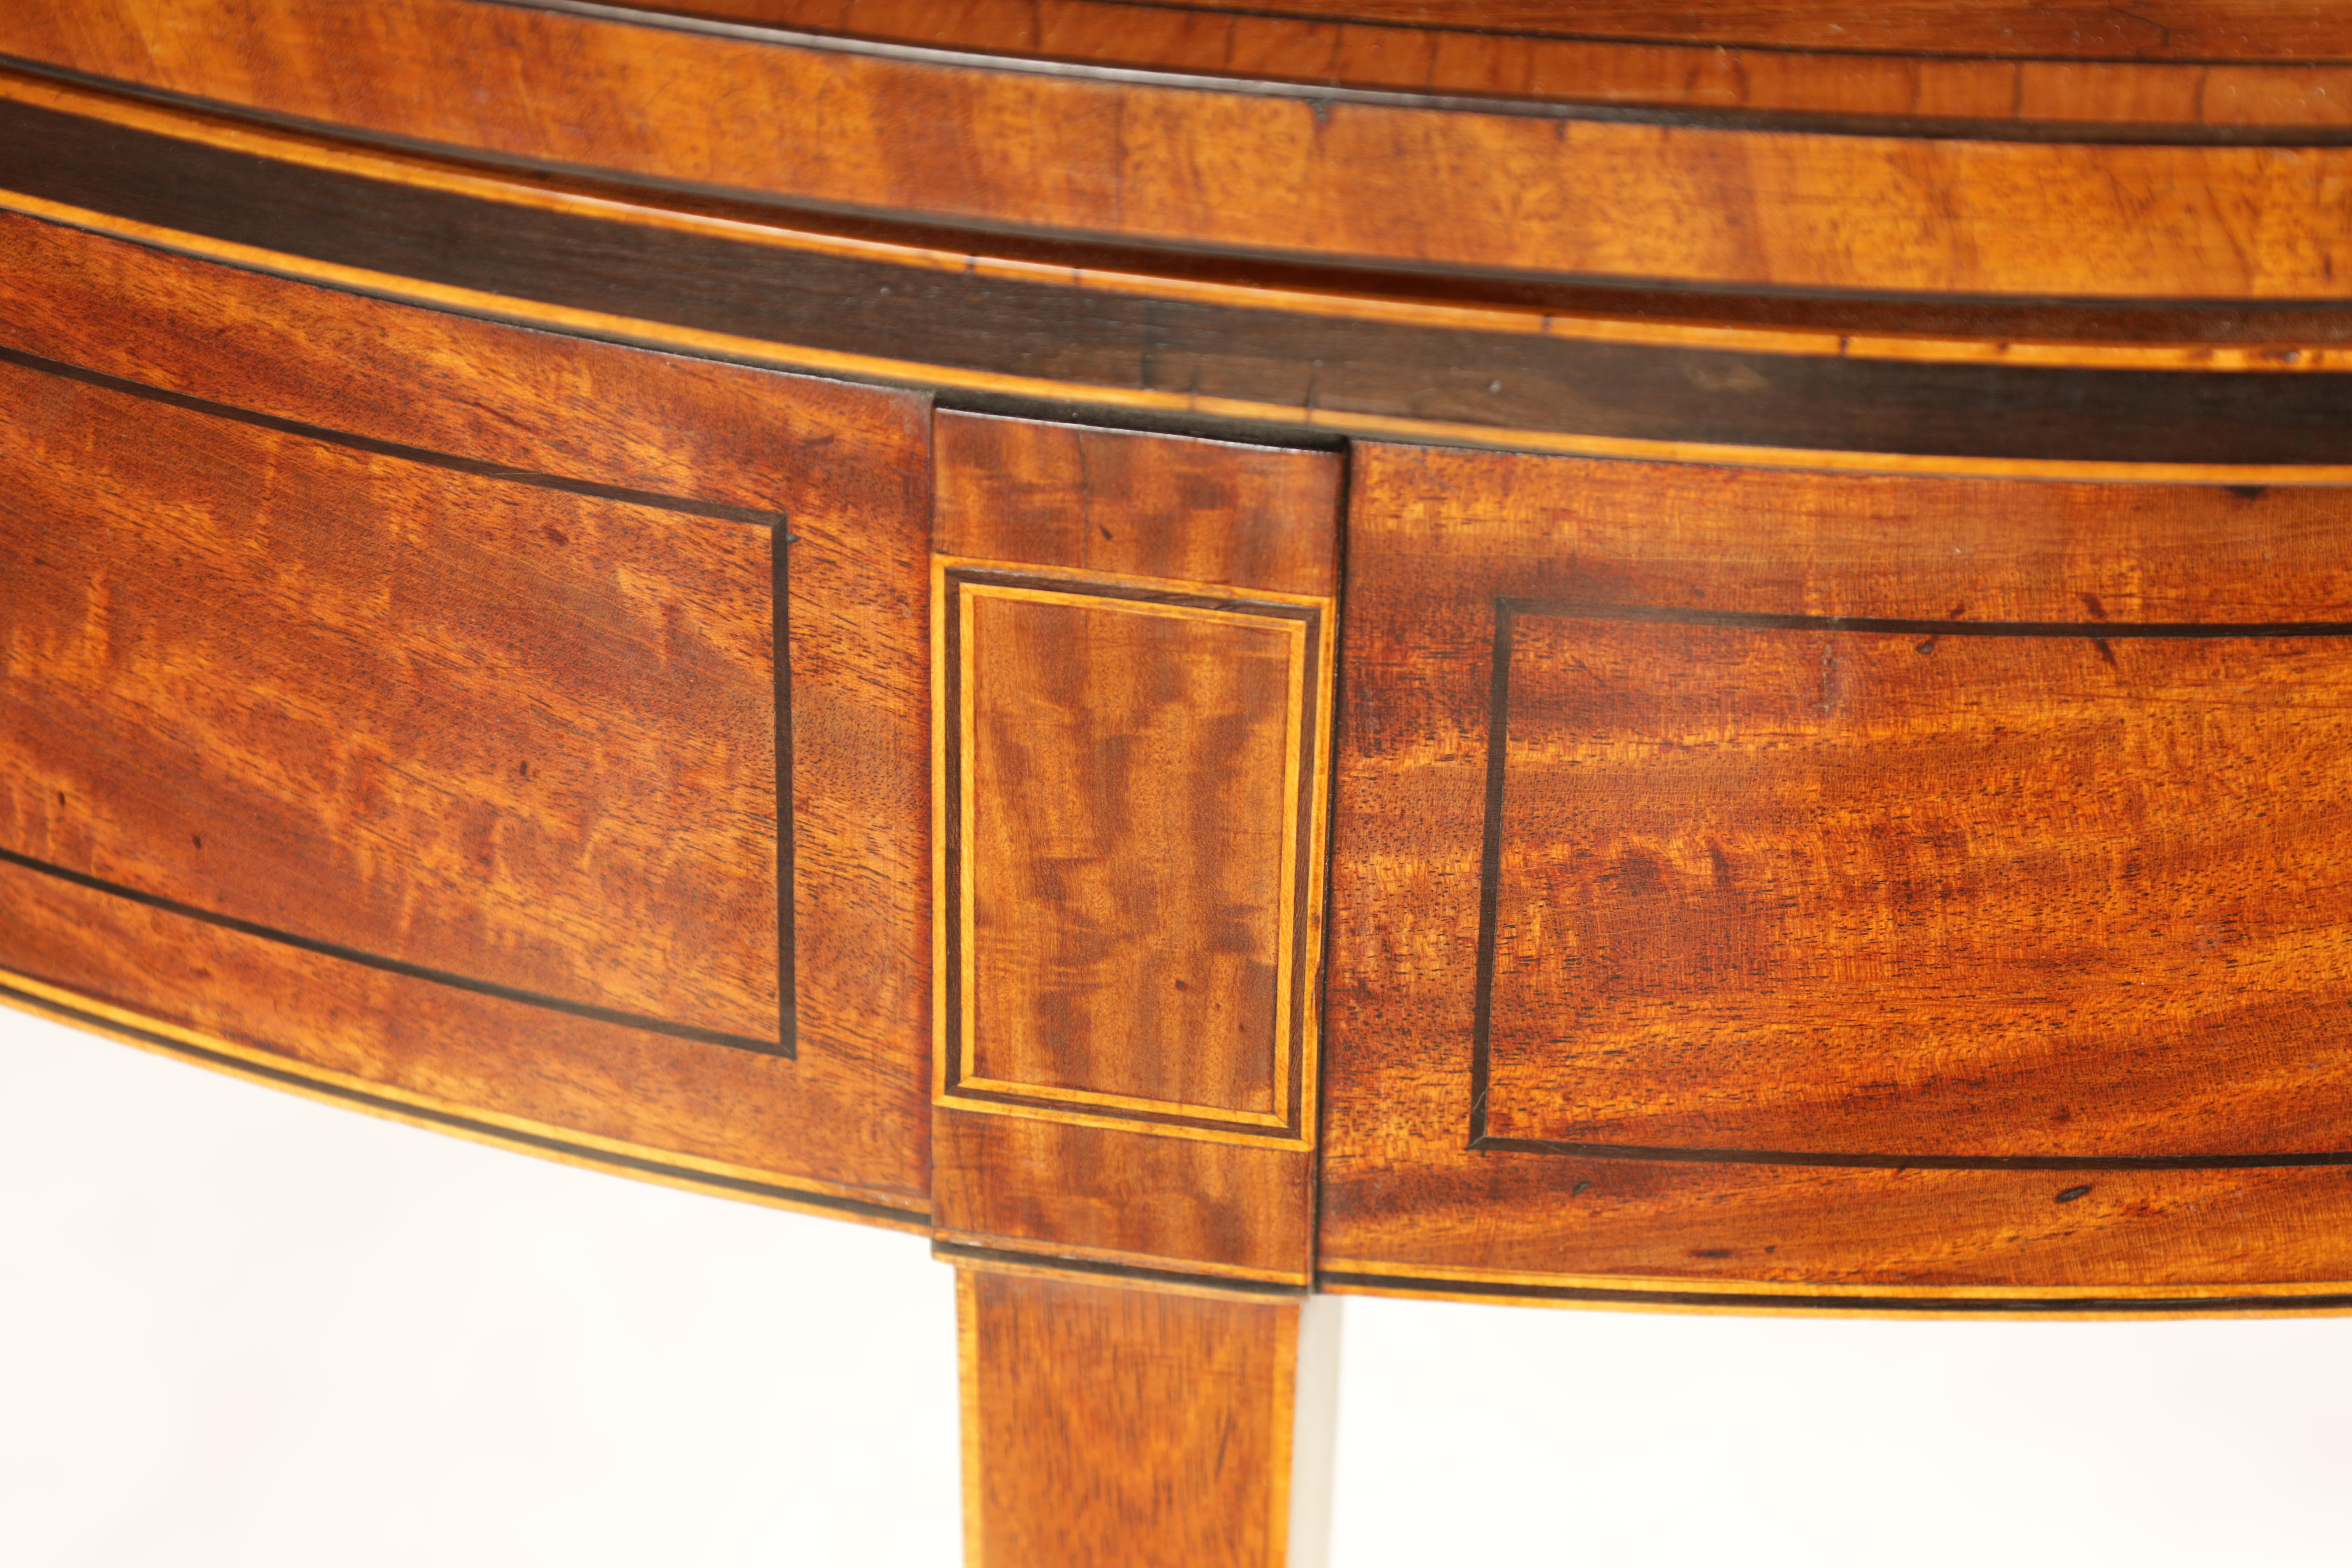 A GEORGE III FIGURED SATINWOOD D END TEA TABLE with hinged top and double gate rear legs; standing - Image 5 of 8